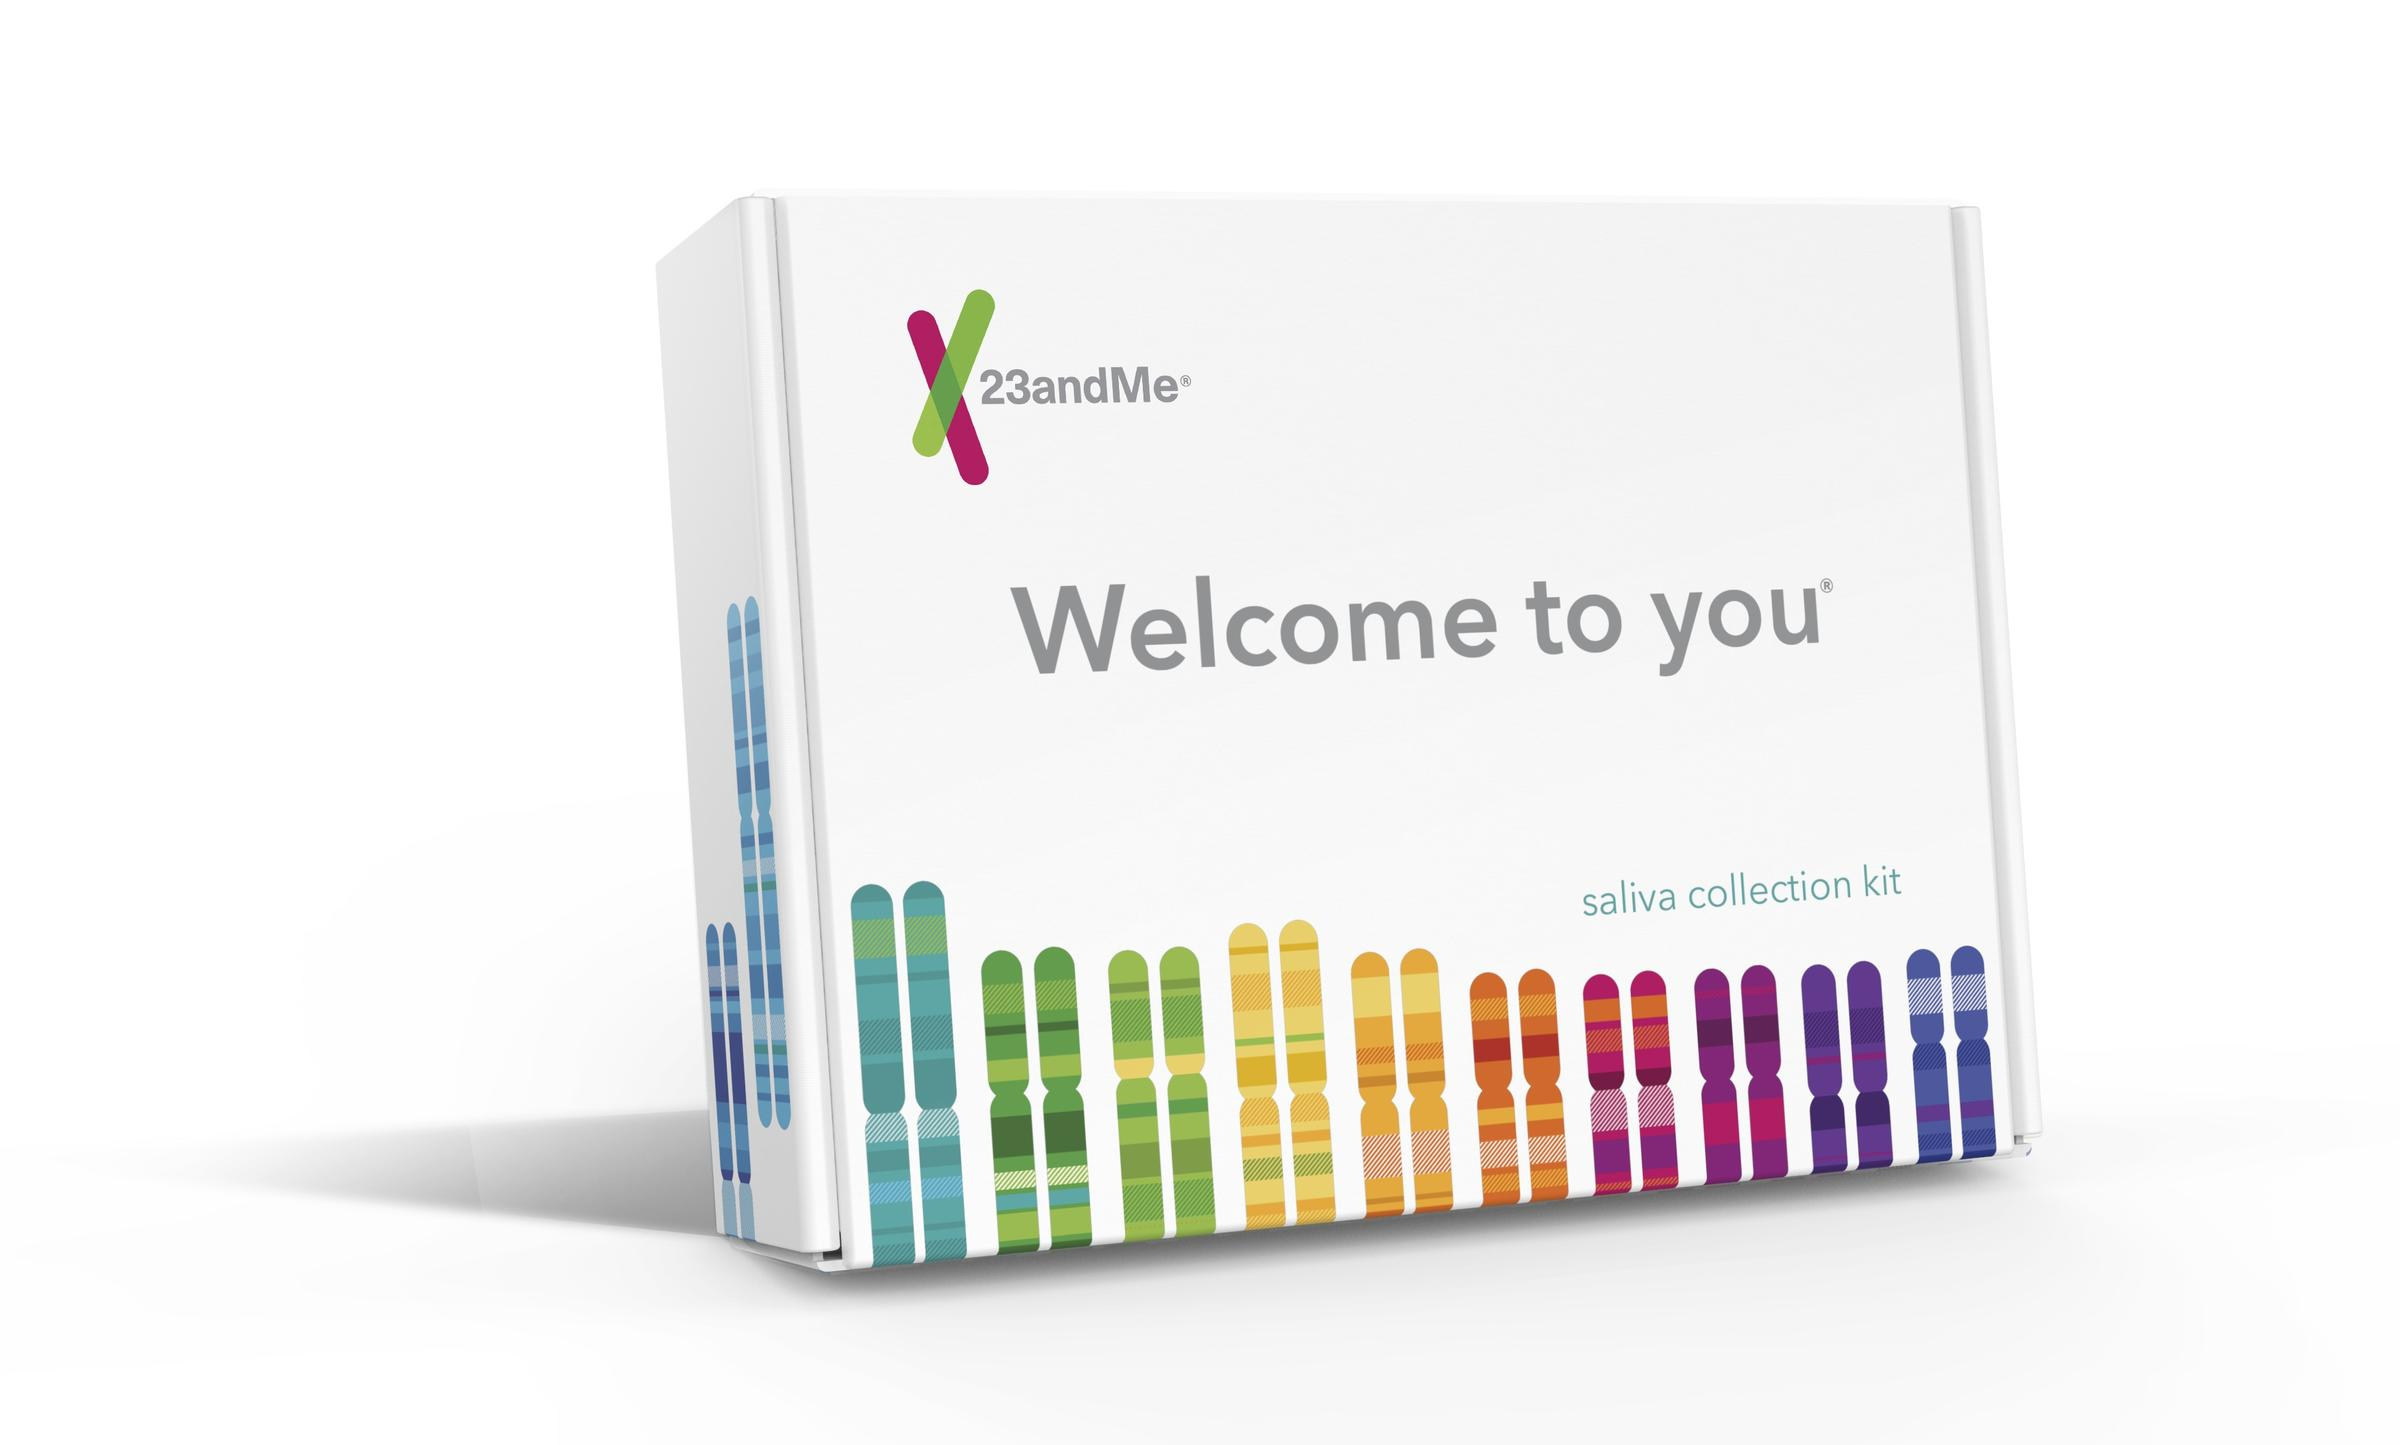 Chuck Schumer Takes Aim At 23andMe And Other Home DNA Testing Services